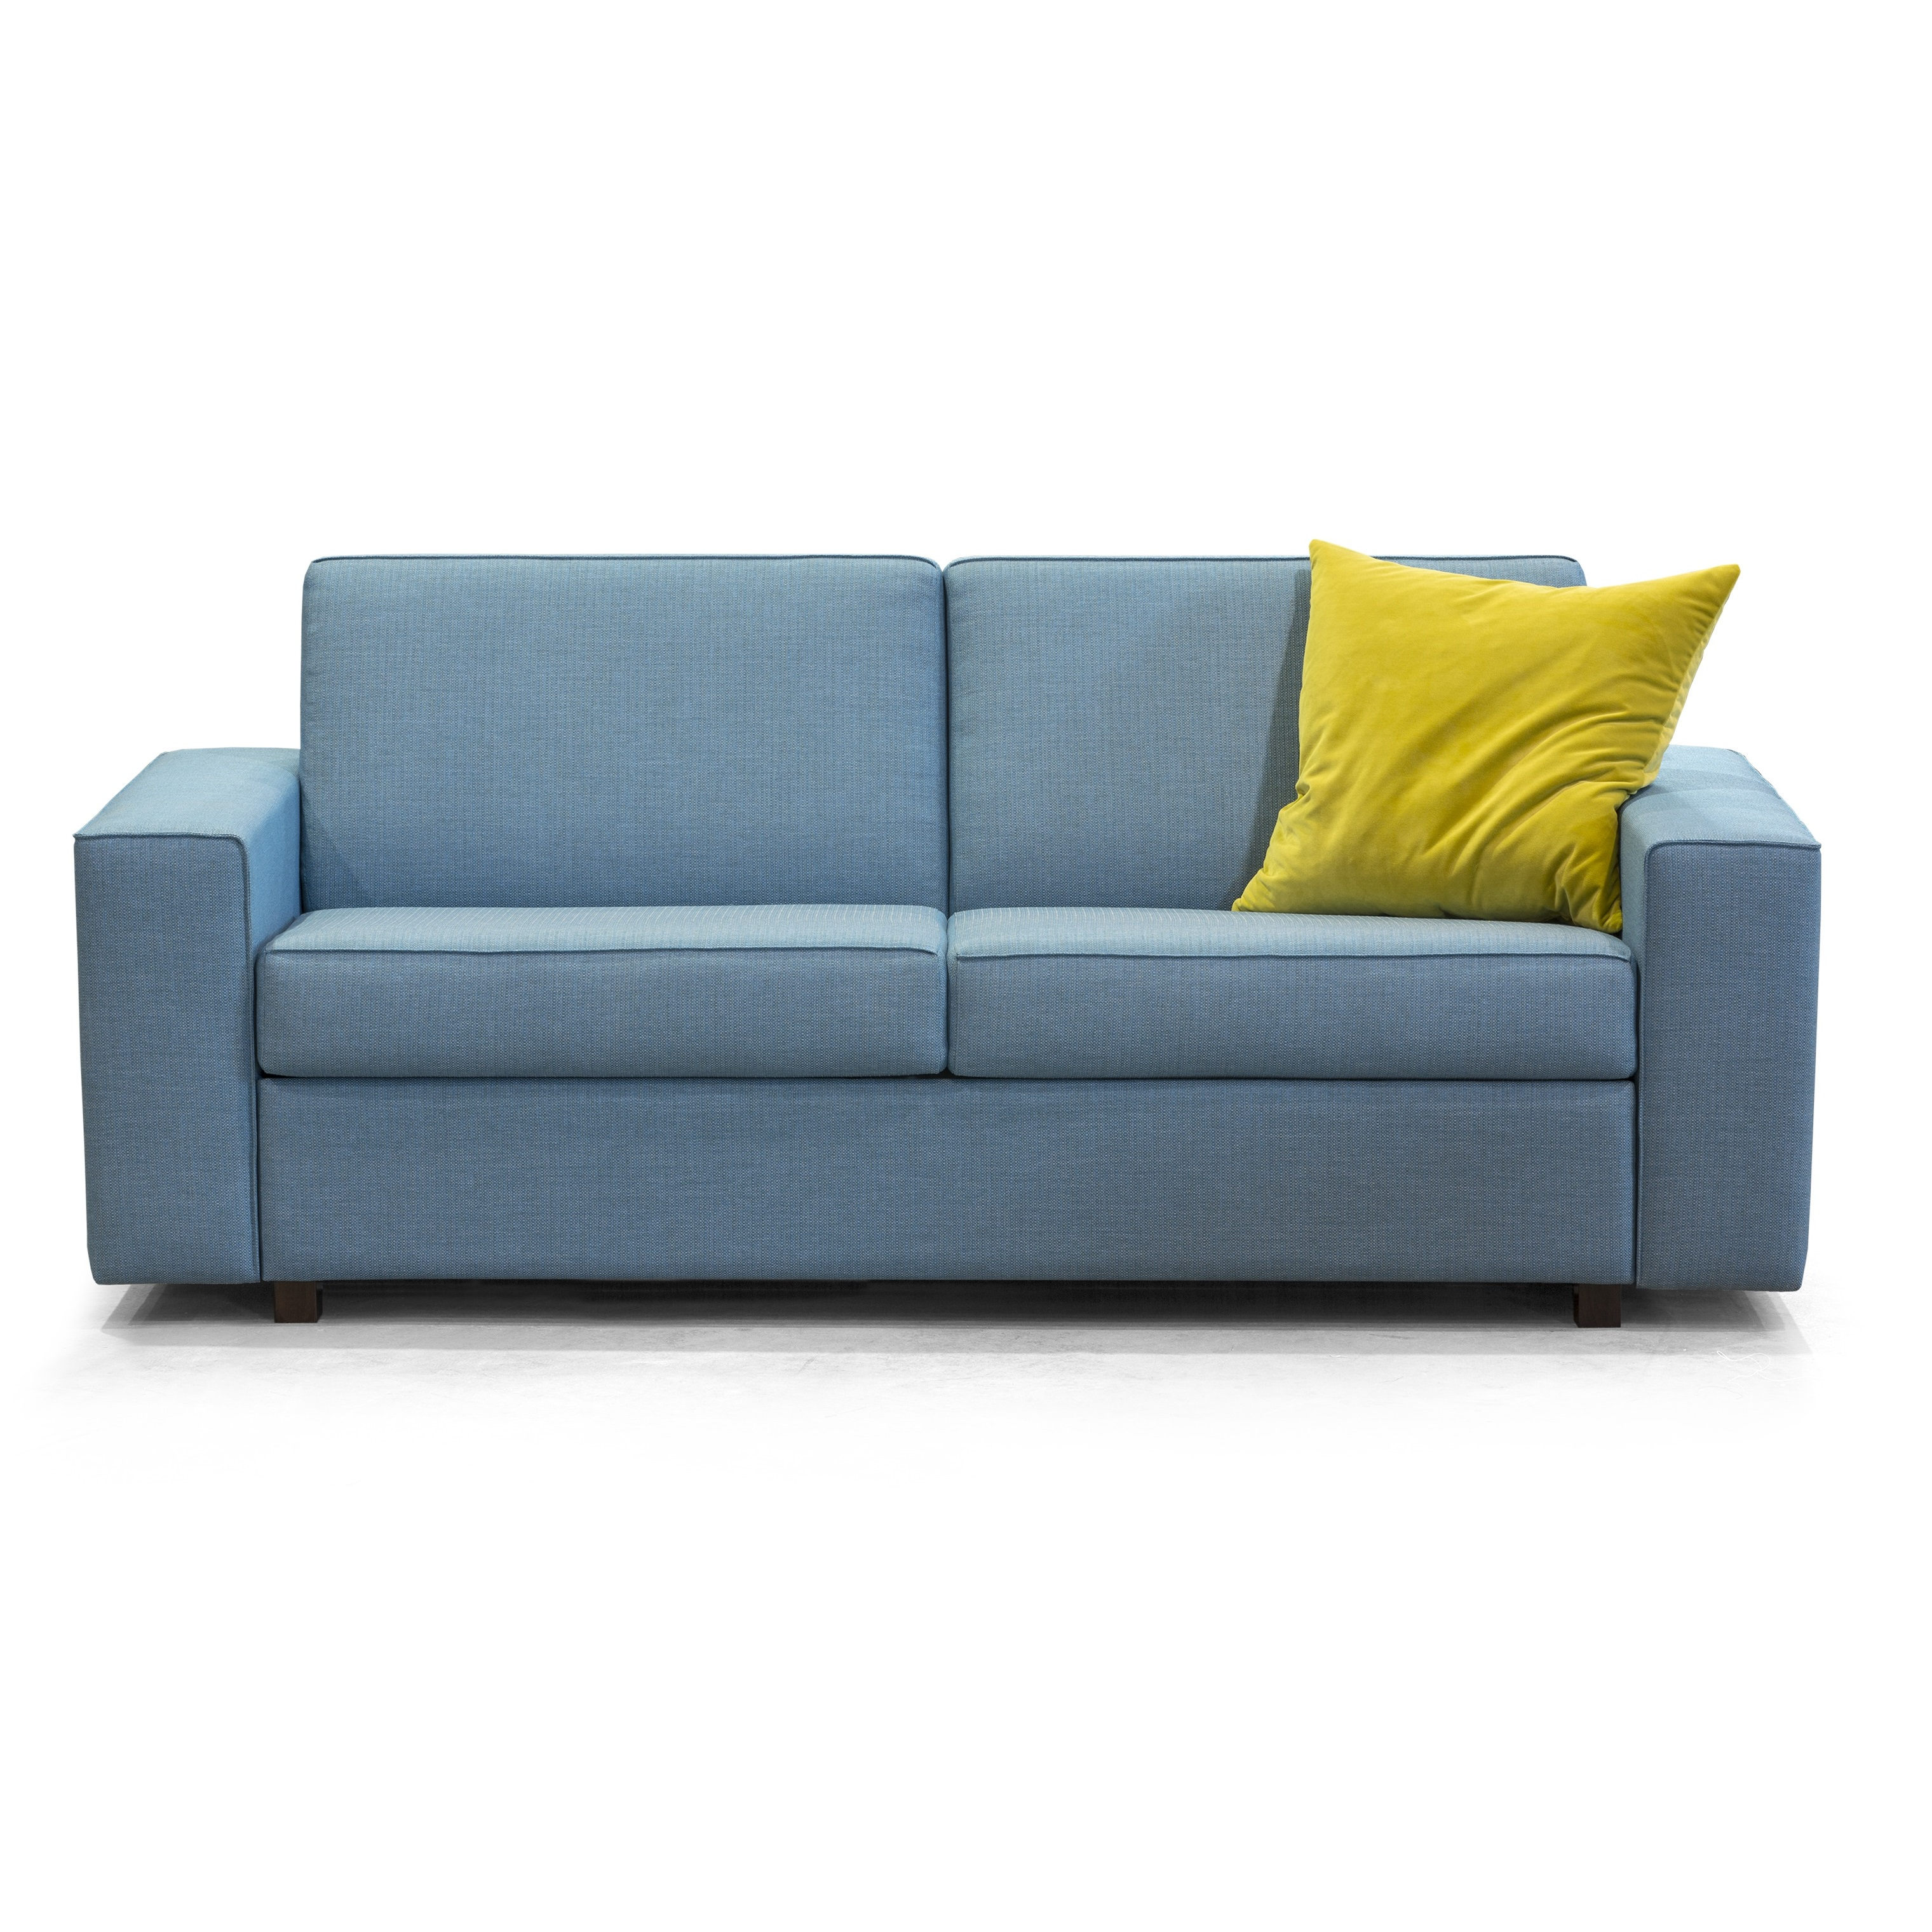 Modern Furniture Ottawa Sofabed Archives Mikaza Meubles Modernes Montreal Modern